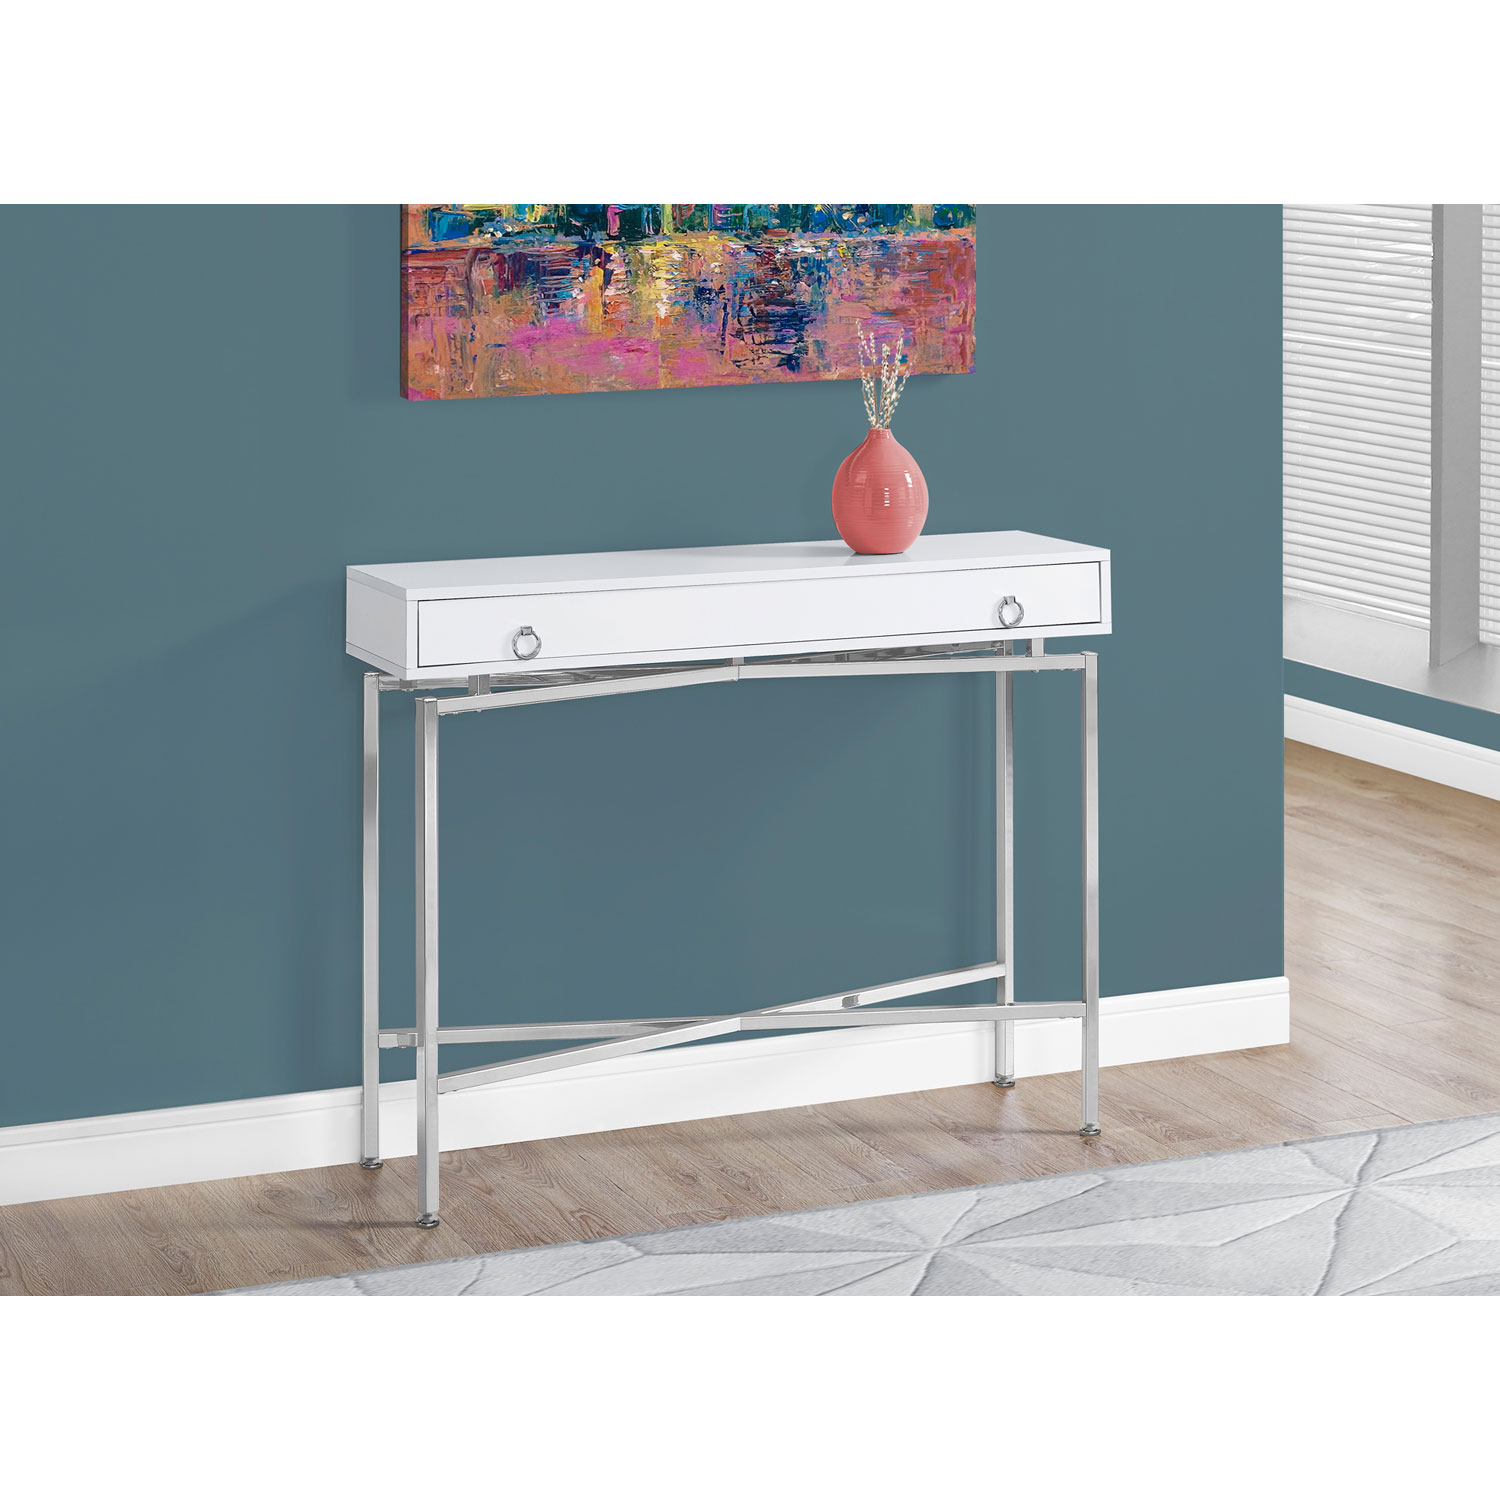 hawthorne ave accent table glossy white chrome hall console glass top bronze hover zoom pottery barn art teal blue coffee folding wood cordless floor lamp rechargeable corner